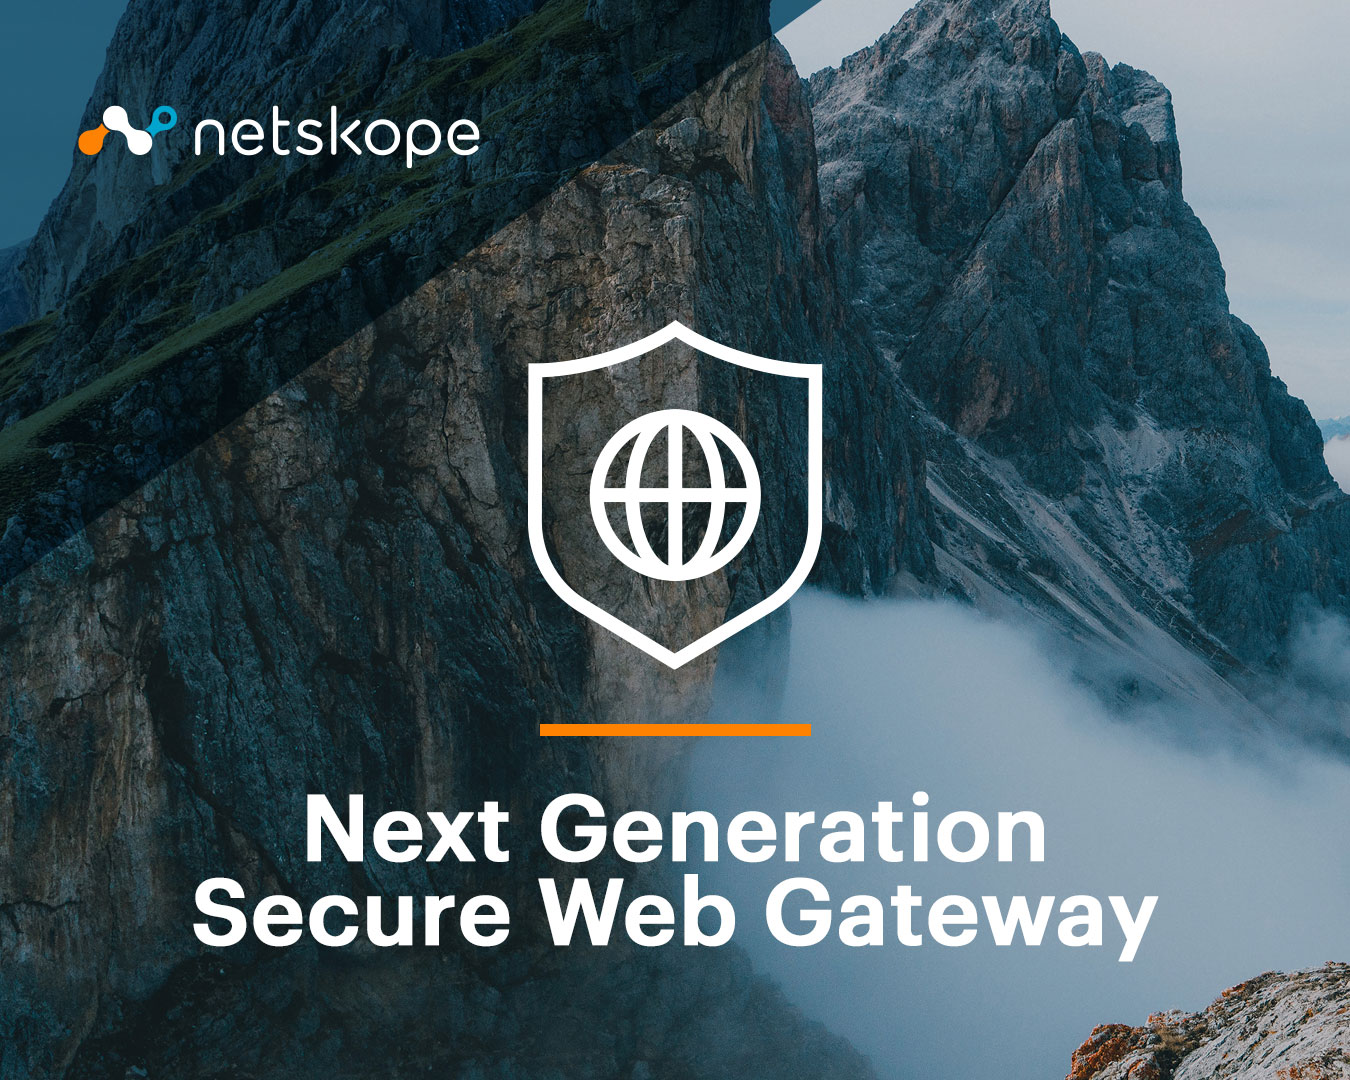 Product picture of Netskope